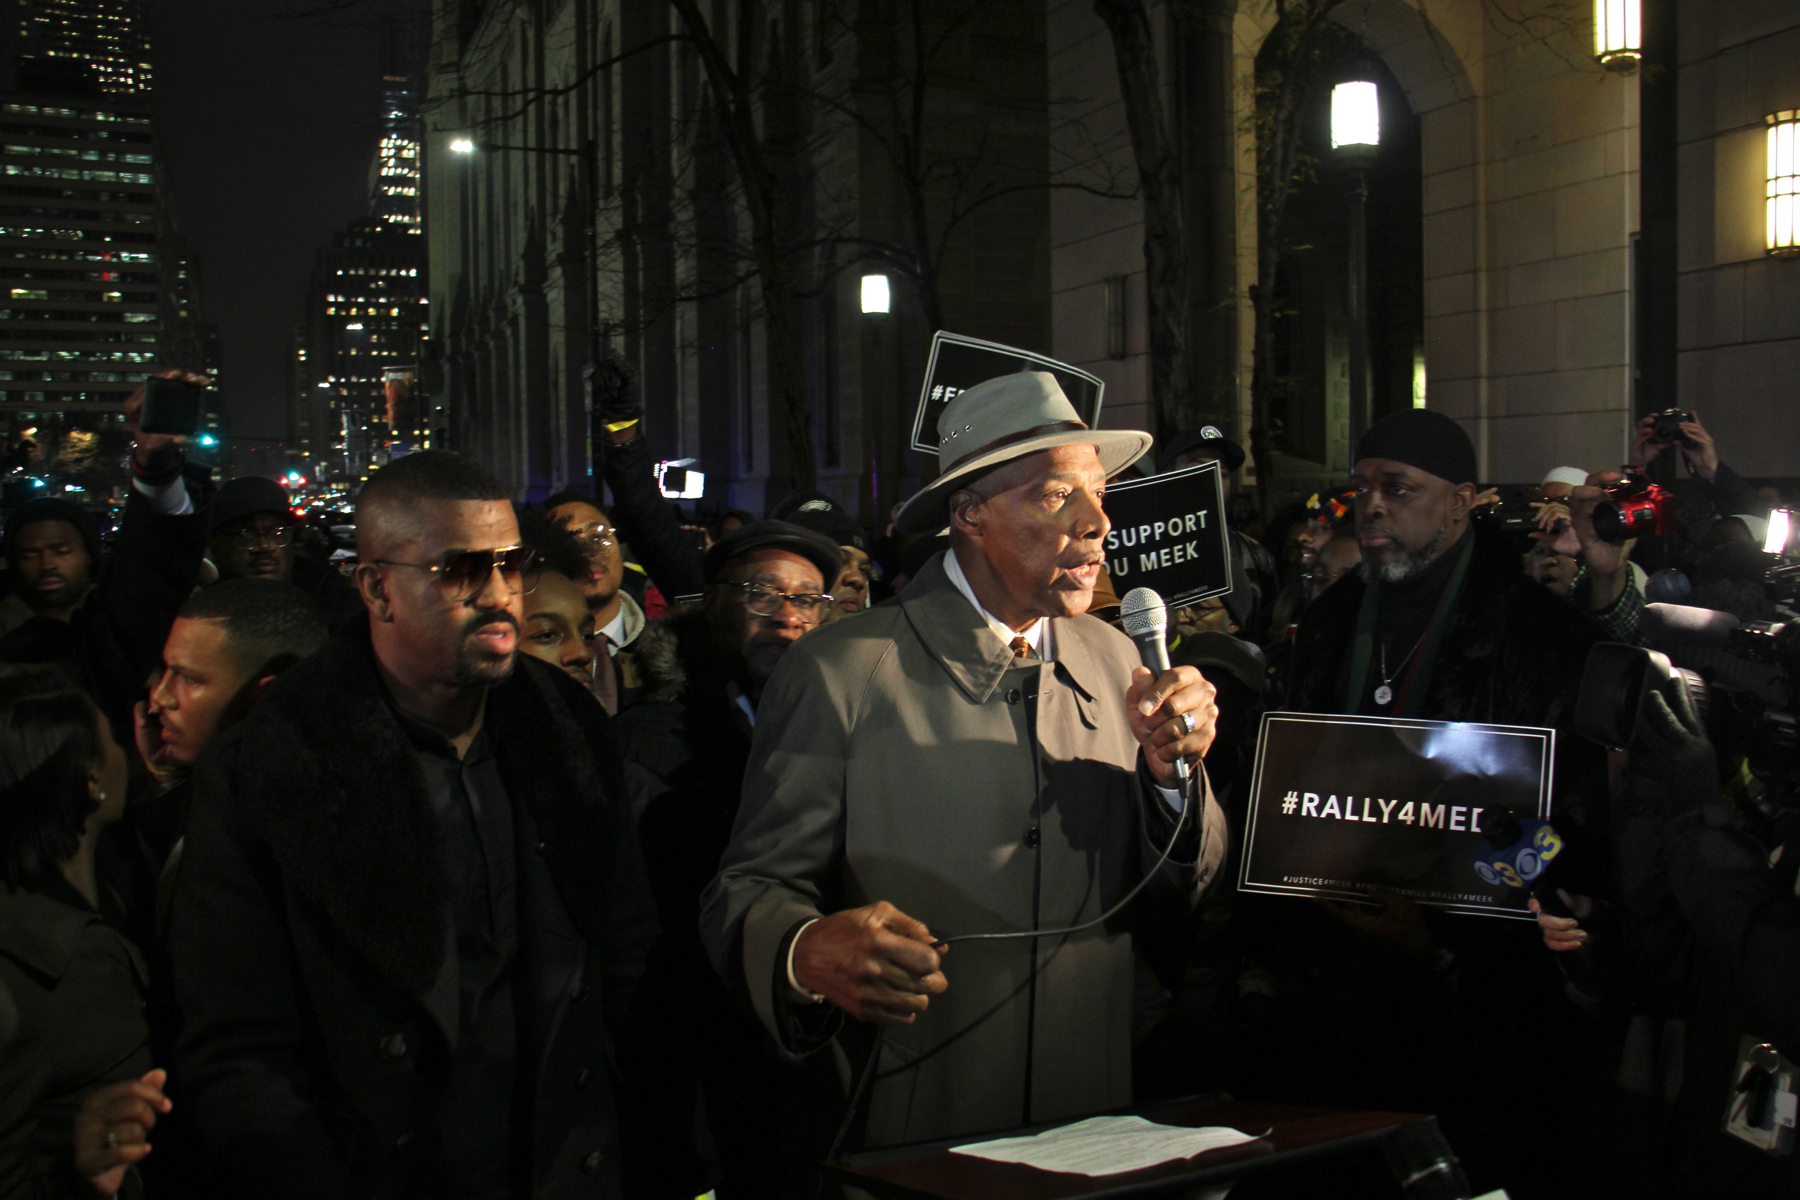 Basketball legend Julius Erving, better known as Dr. J, speaks in support of hip hop musician Meek Mill. He was one of a host of local celebrities who turned out for a rally outside the Center for Criminal Justice in Center City